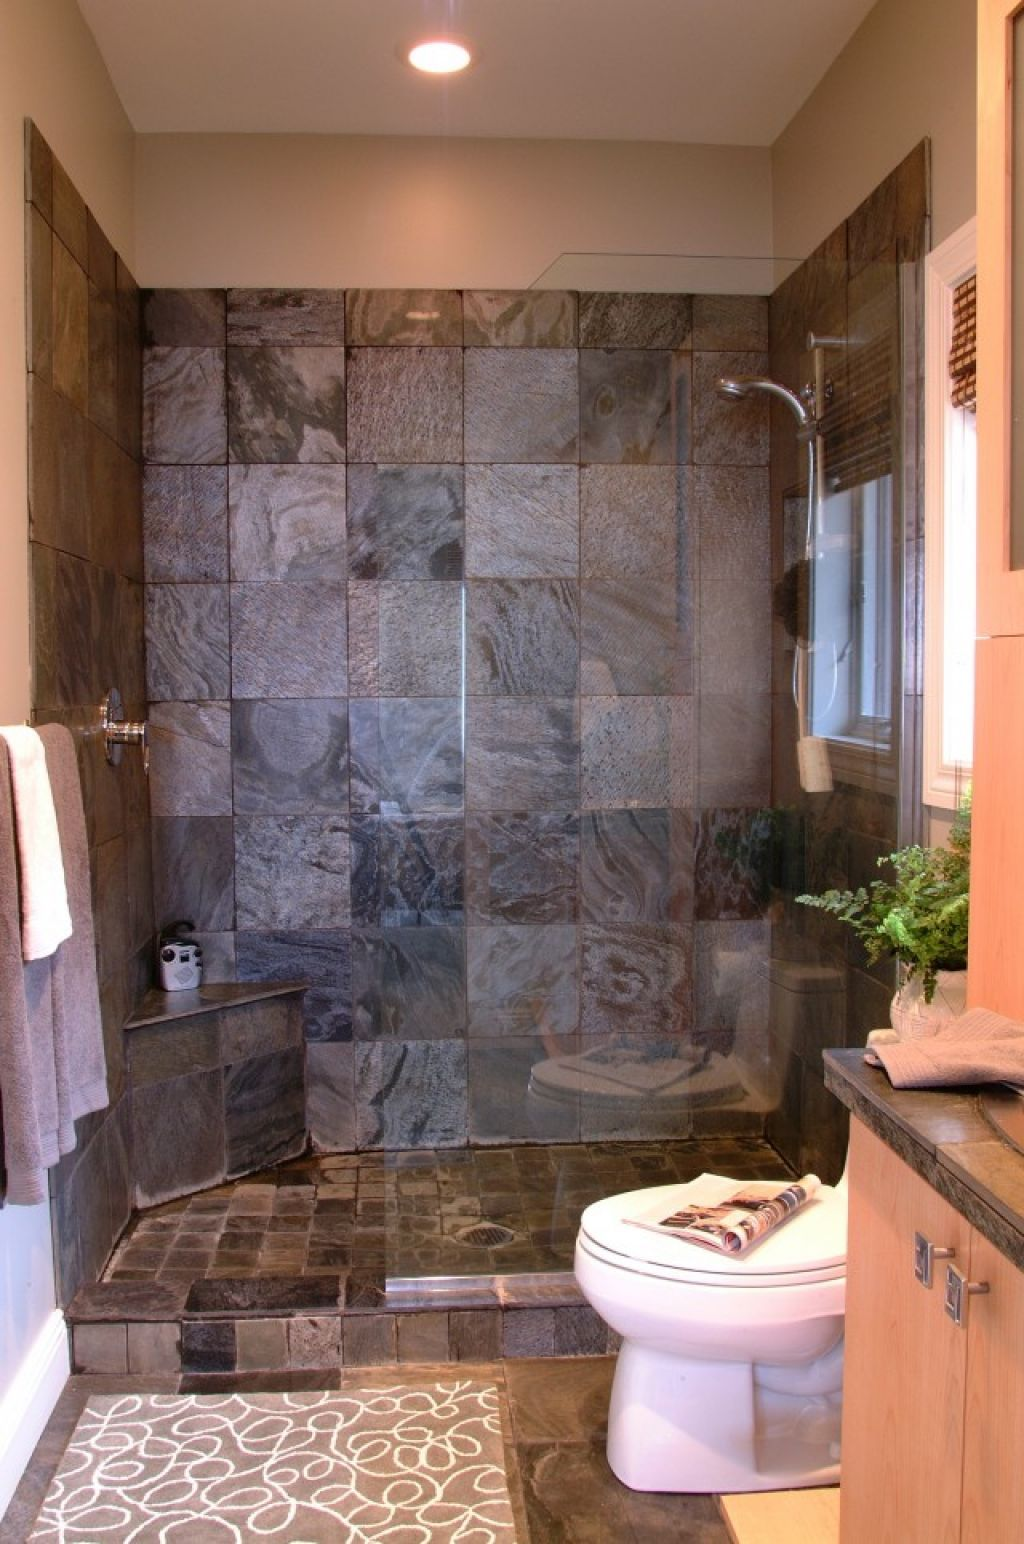 Bathroom ideas of doorless walk in shower for small - Bathroom design small spaces pictures ...